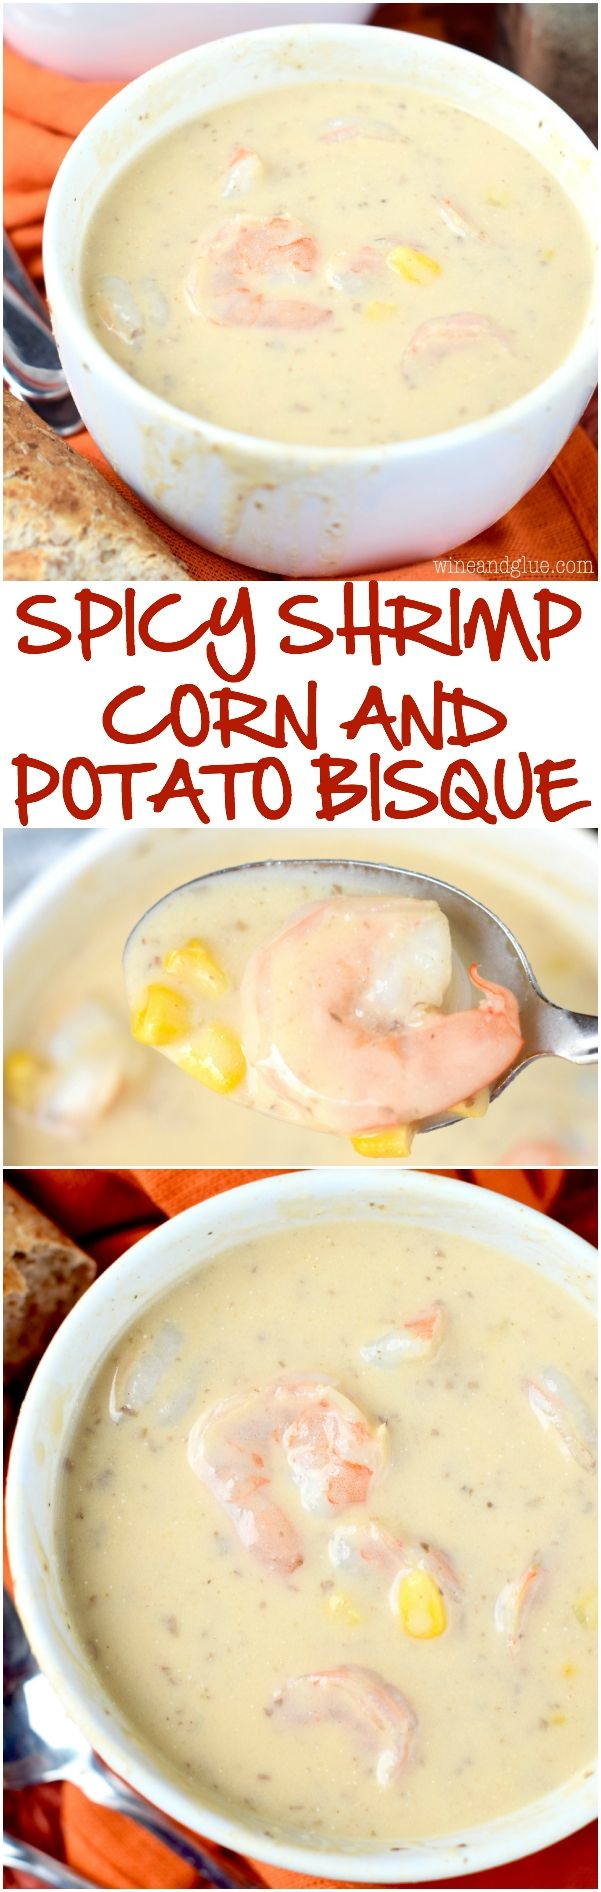 This Spicy Shrimp Corn and Potato Bisque is simple to make, but so packed with flavor! It's going to be come a family favorite!: